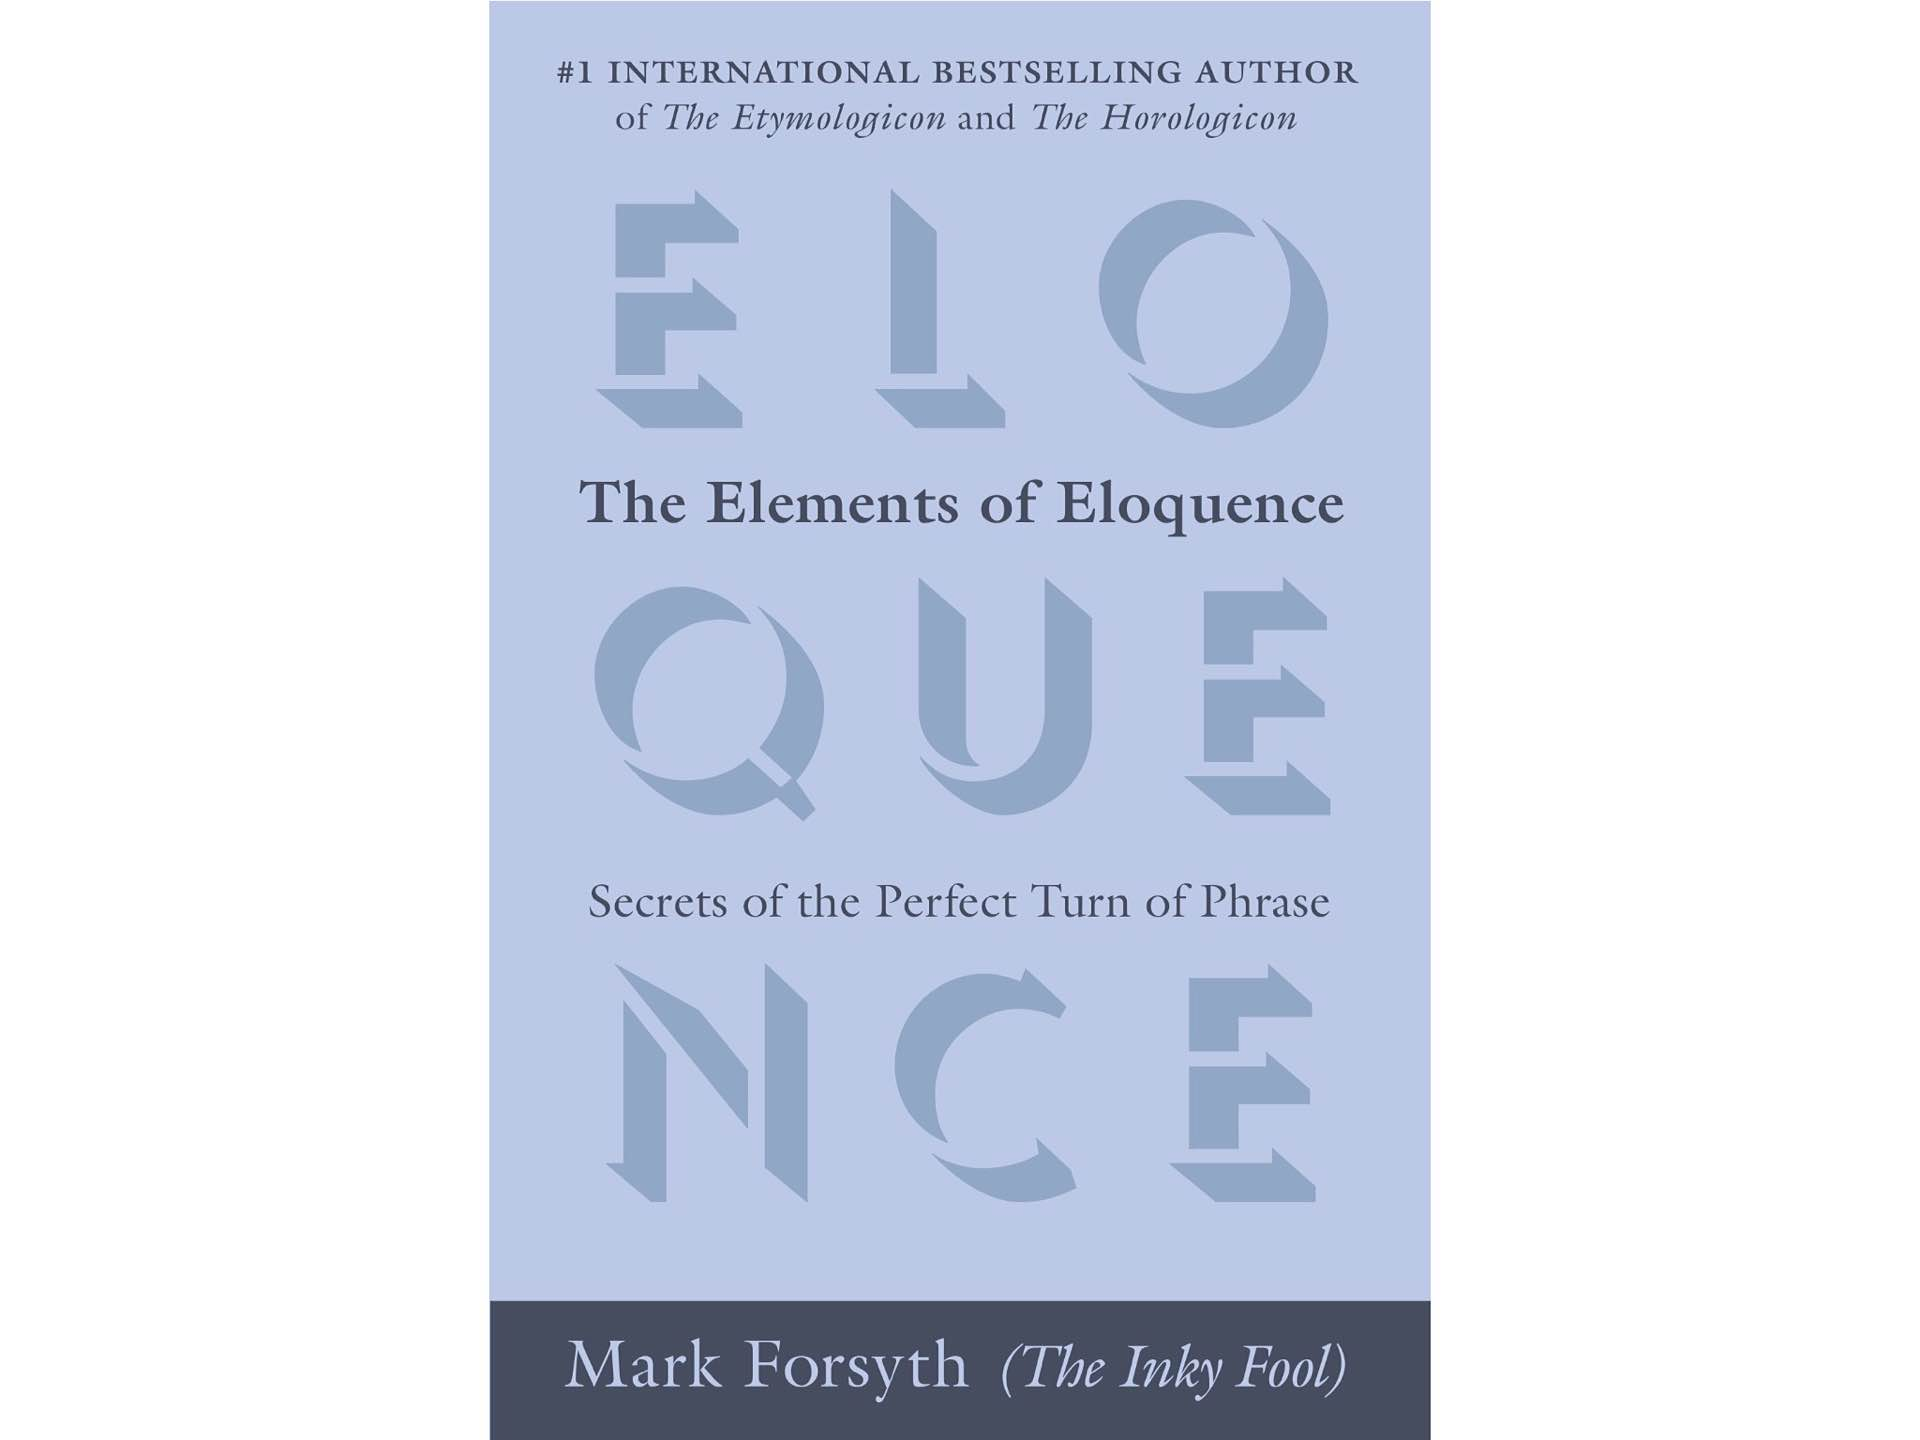 The Elements of Eloquence by Mark Forsyth.